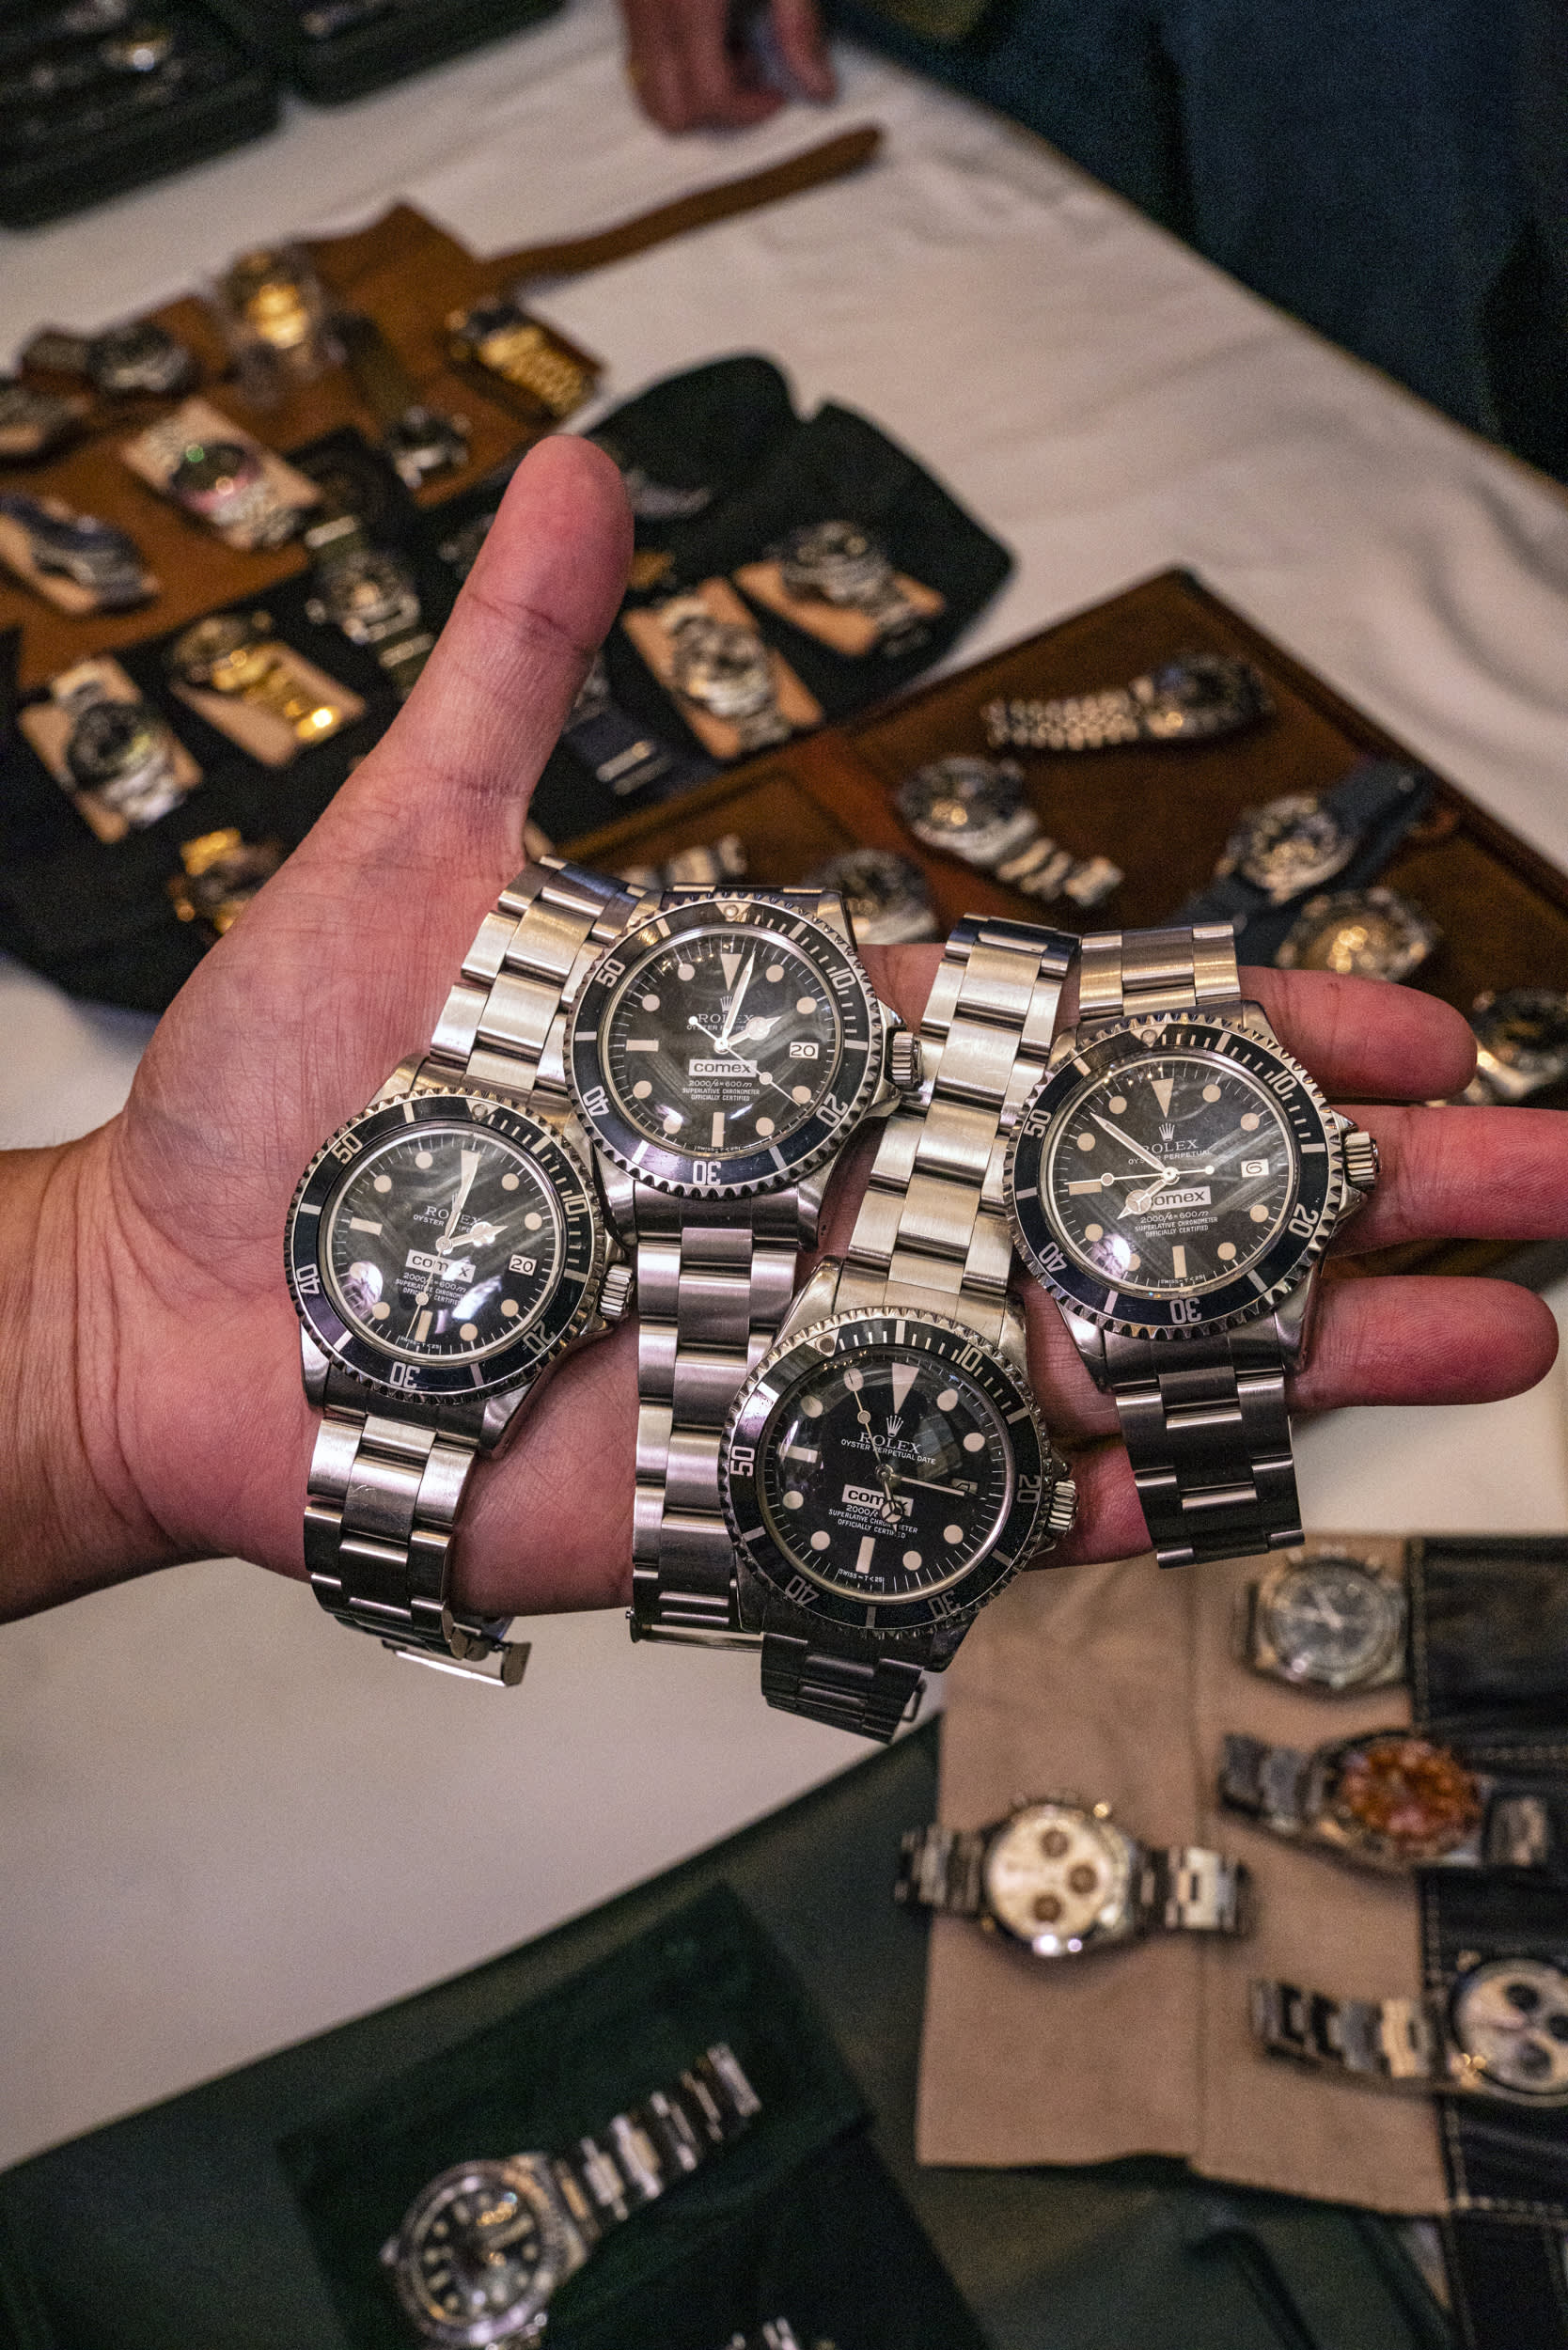 Inside a secret Rolex meetup, the finds include a 'sexpile' worth millions and a radioactive watch